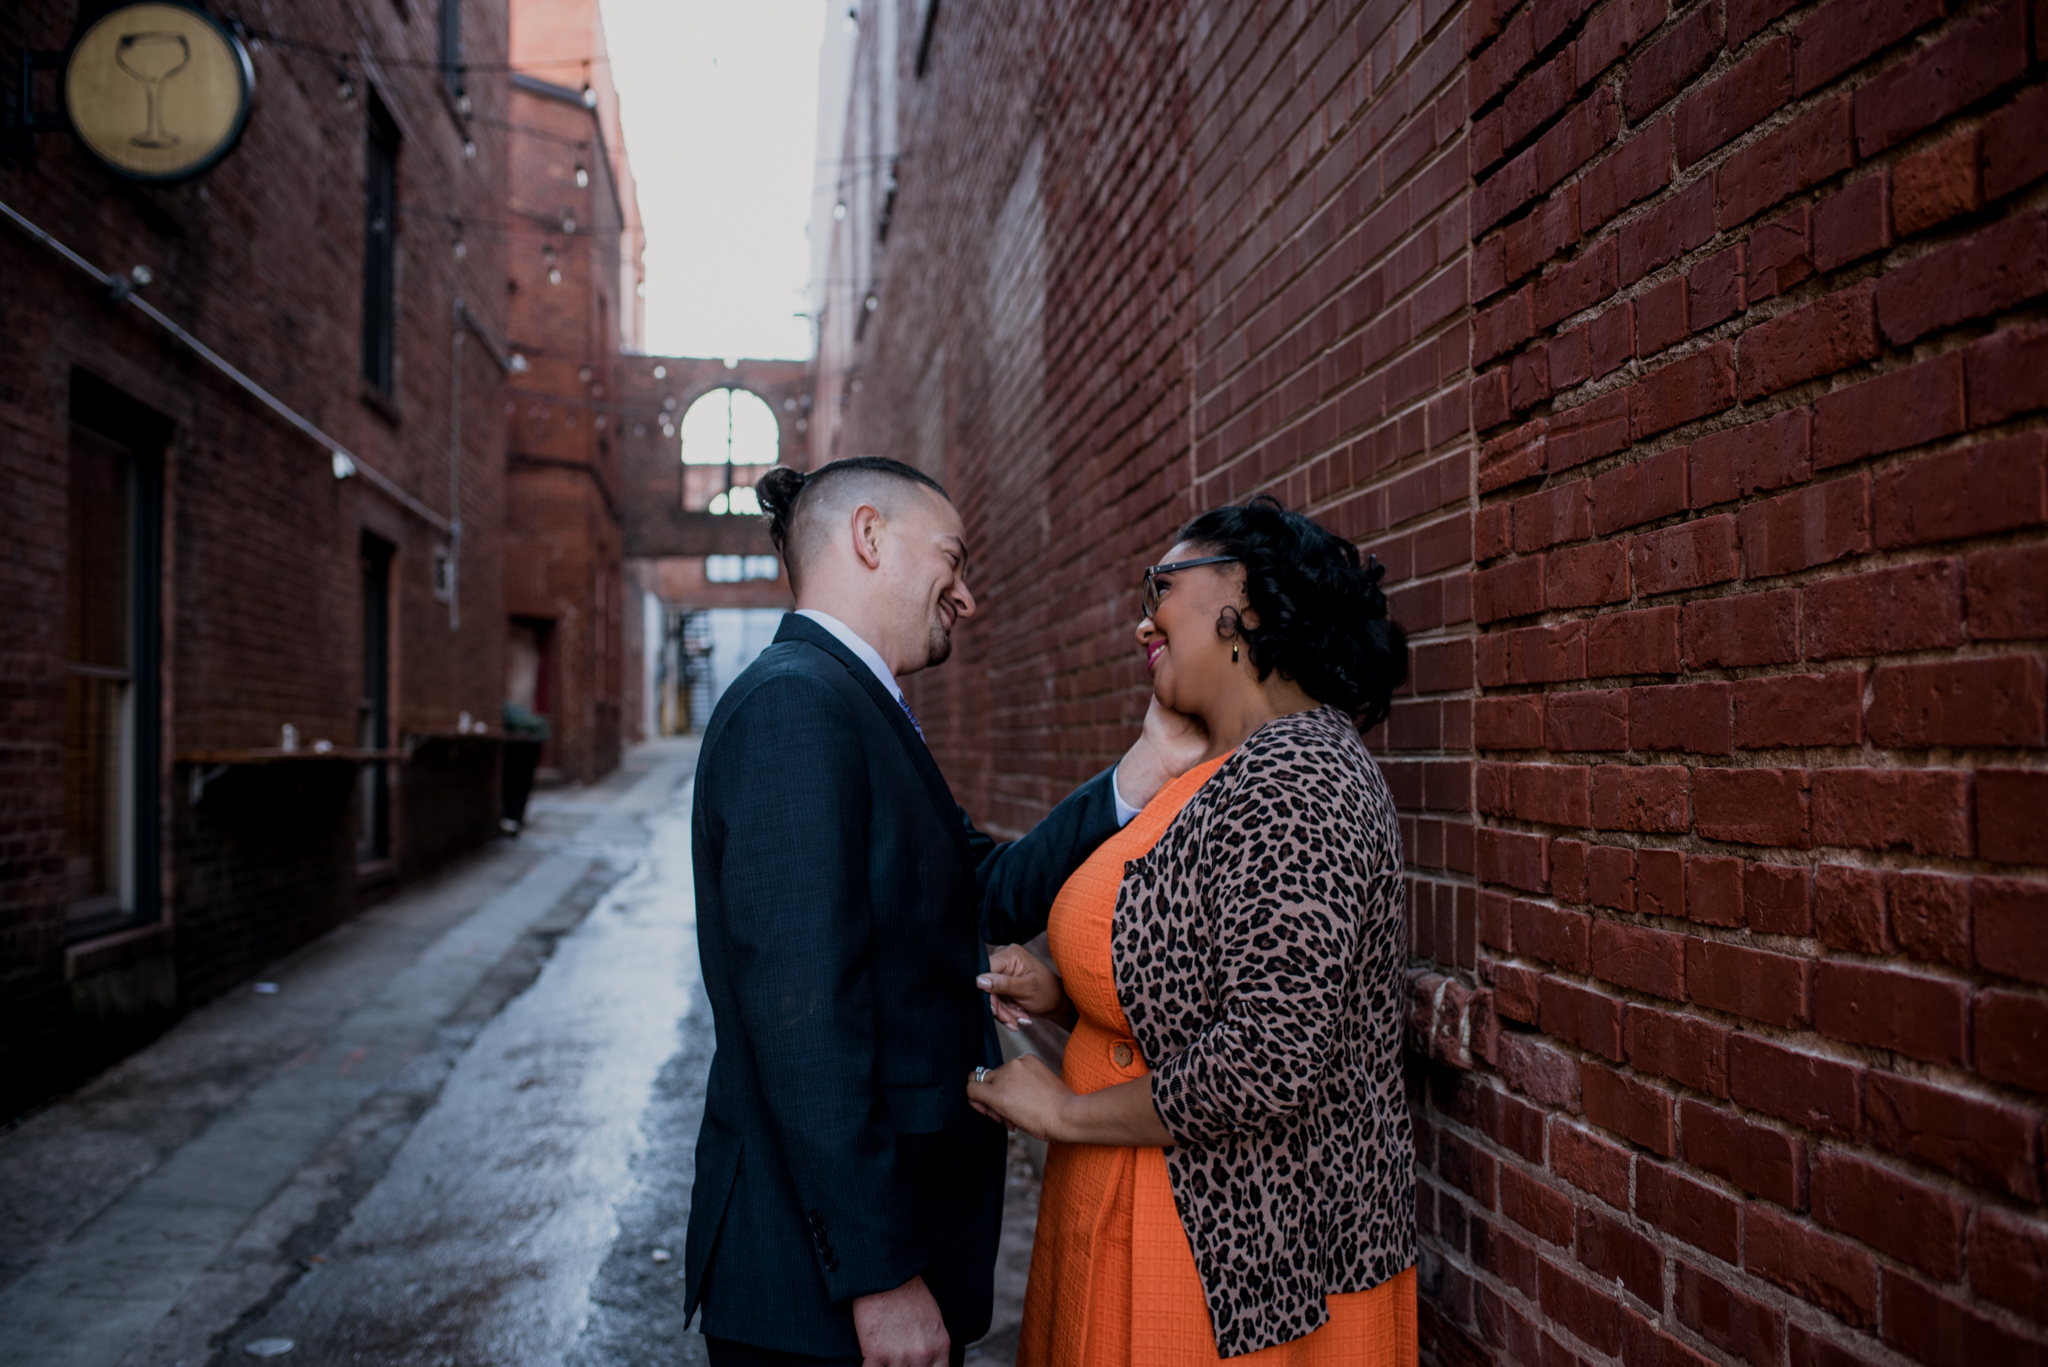 The husband and wife stand close in an alley way outside of The Durham Hotel in Durham, North Carolina, image by Rose Trail Images.